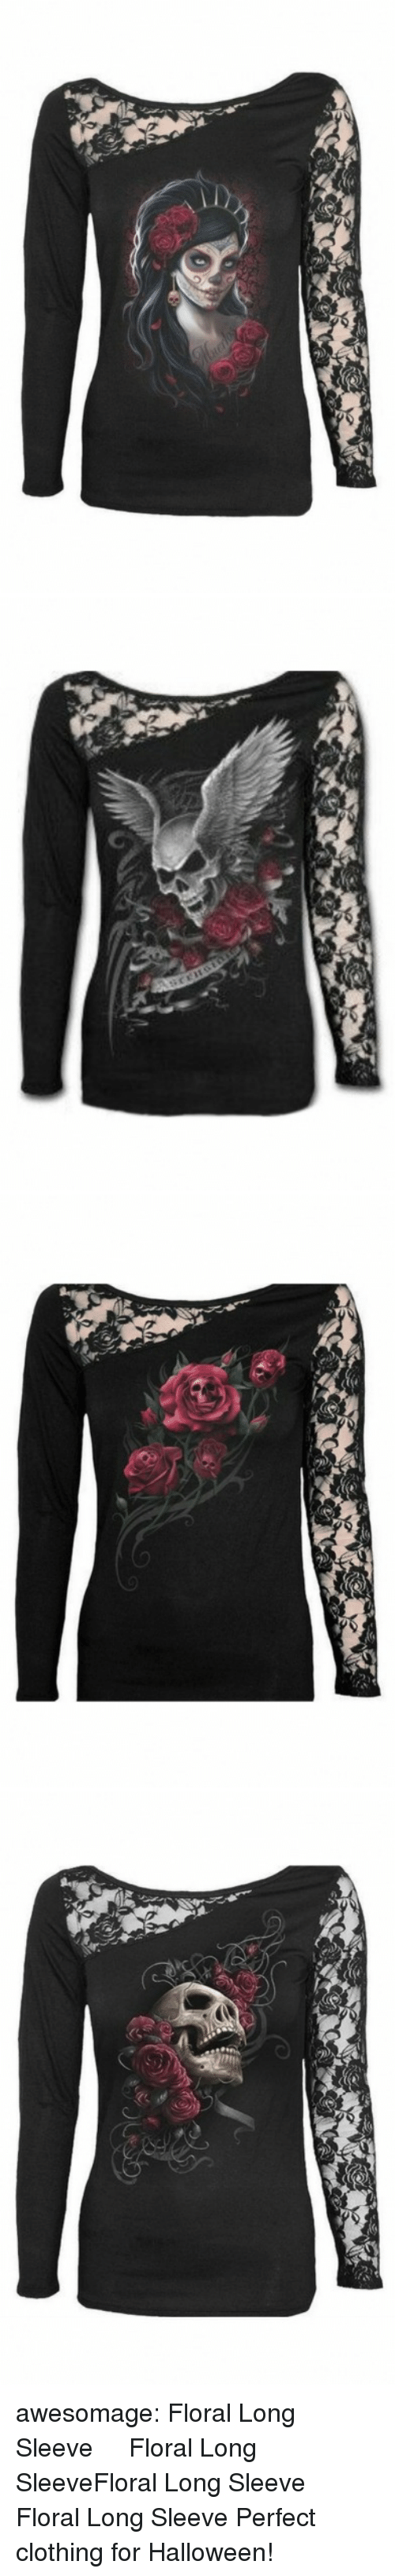 Halloween, Tumblr, and Blog: awesomage: Floral Long Sleeve  Floral Long SleeveFloral Long Sleeve  Floral Long Sleeve   Perfect clothing for Halloween!